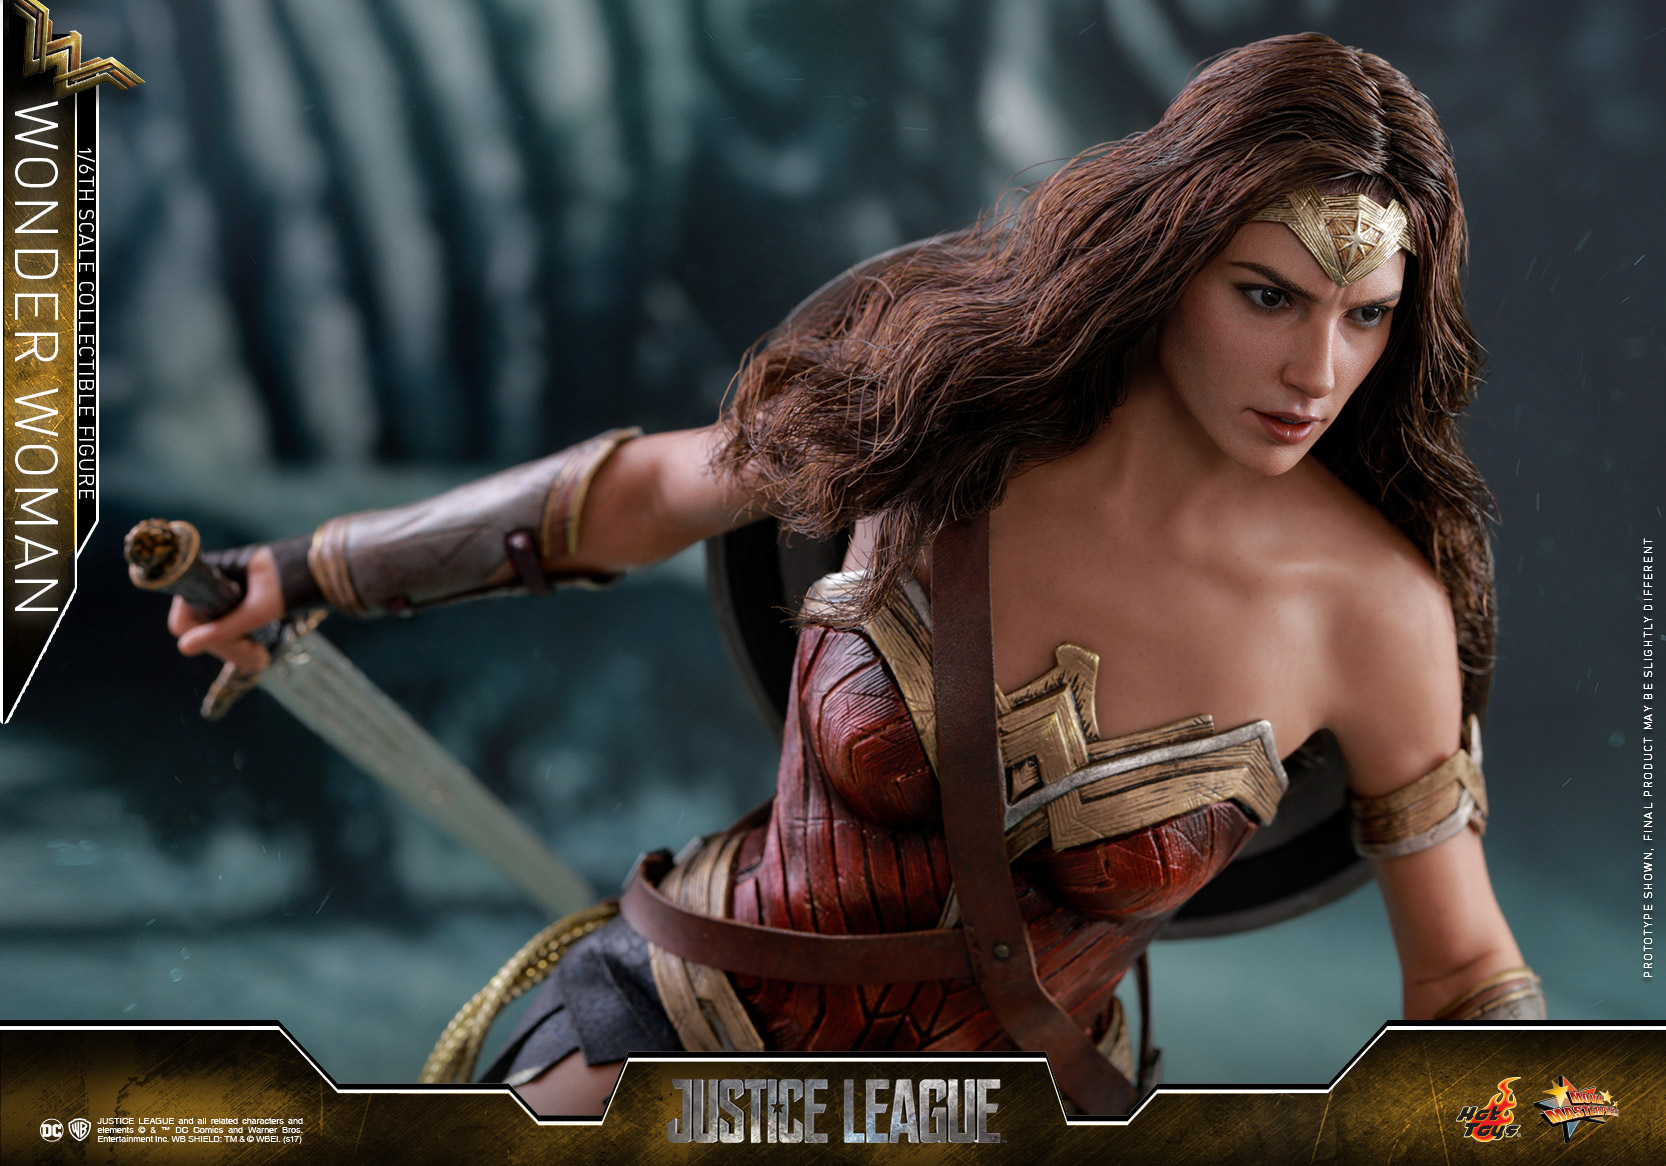 Hot-Toys-Justice-League-Wonder-Woman-collectible-figure_PR9.jpg